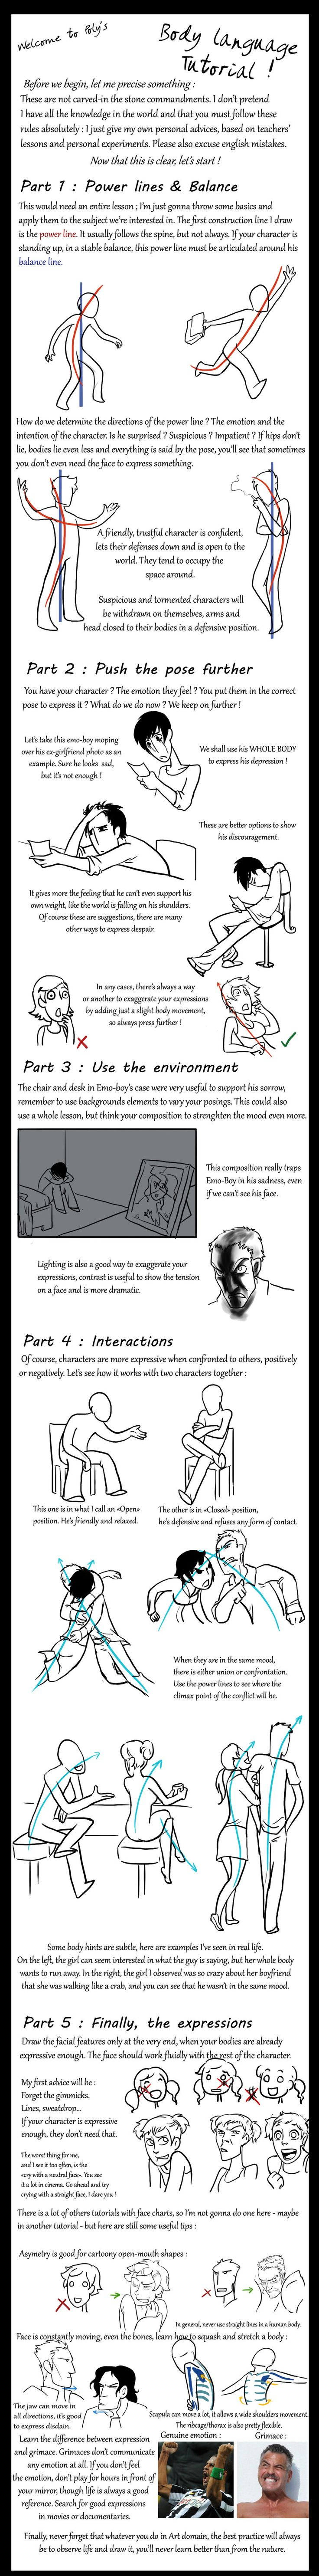 Body Language Tutorial by PolymorphicGirl.deviantart.com ✤ || CHARACTER DESIGN REFERENCES | キャラクターデザイン | çizgi film • Find more at https://www.facebook.com/CharacterDesignReferences & http://www.pinterest.com/characterdesigh if you're looking for: #line #of #action #animation #how #to #draw #drawing #tutorial #lesson #disegno #power #lines #sketch #strip #fumetto #anatomy #fumetti #line #art #cartoni #animati #comics #movement #tips #cartoon || ✤